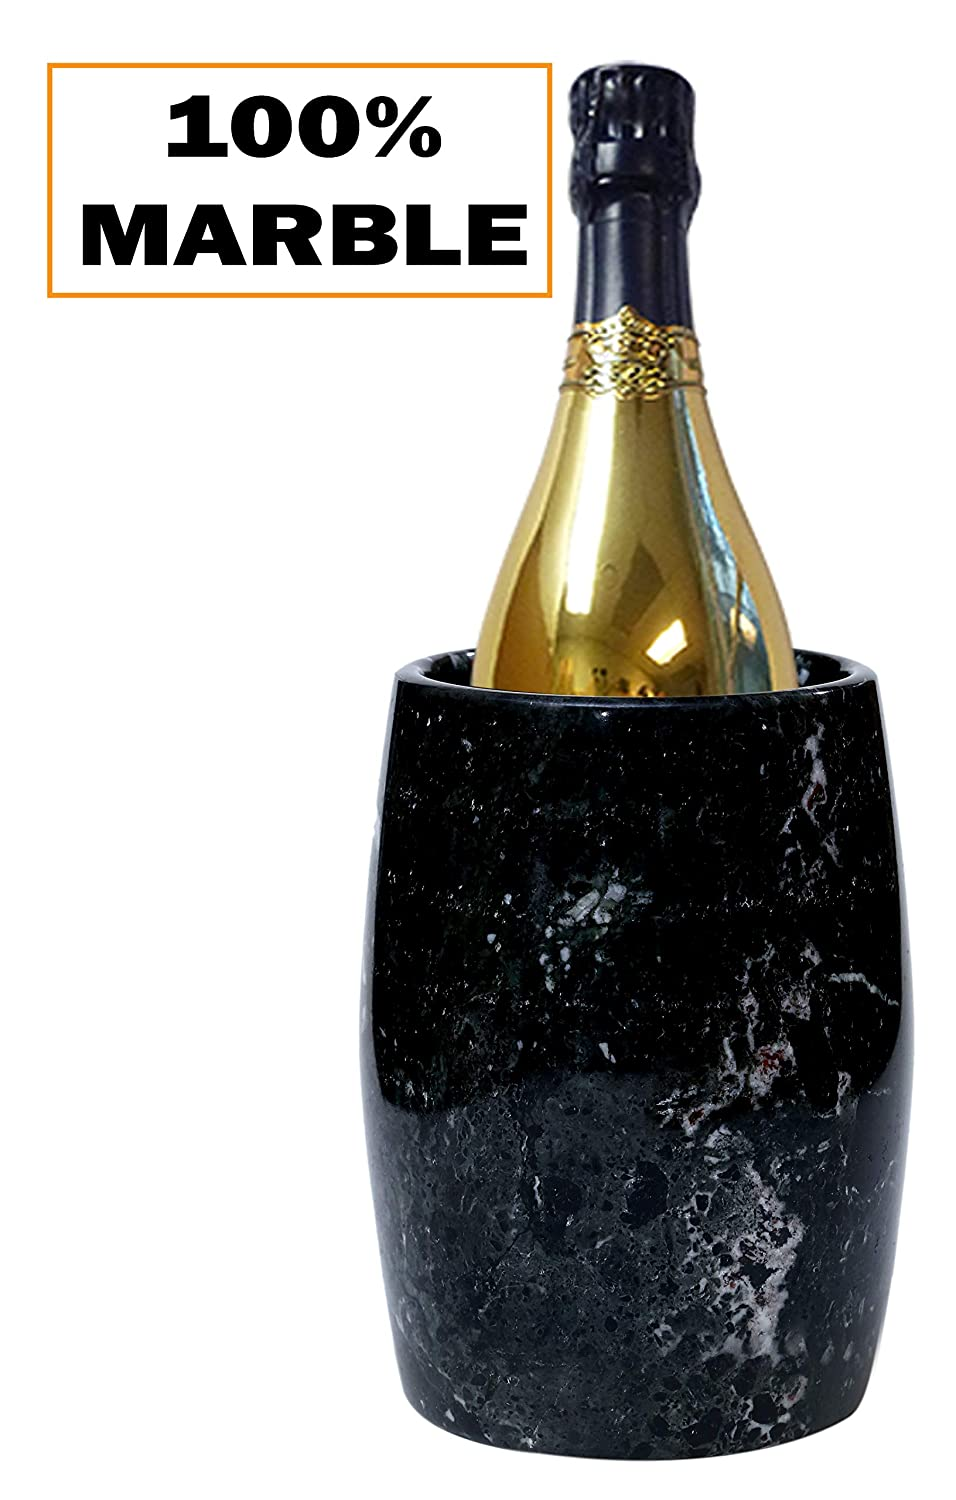 """Wine Chiller 5x5x6.5 Inch"""" Tall Outdoor Marble Black Handmade Marble Wine Chillers – Tabletop Portable Non Sleeves Non Electric Champagne Freeze Cooler – Inside Kitchen Creative Home Décor (BZ-02) RADICALn"""